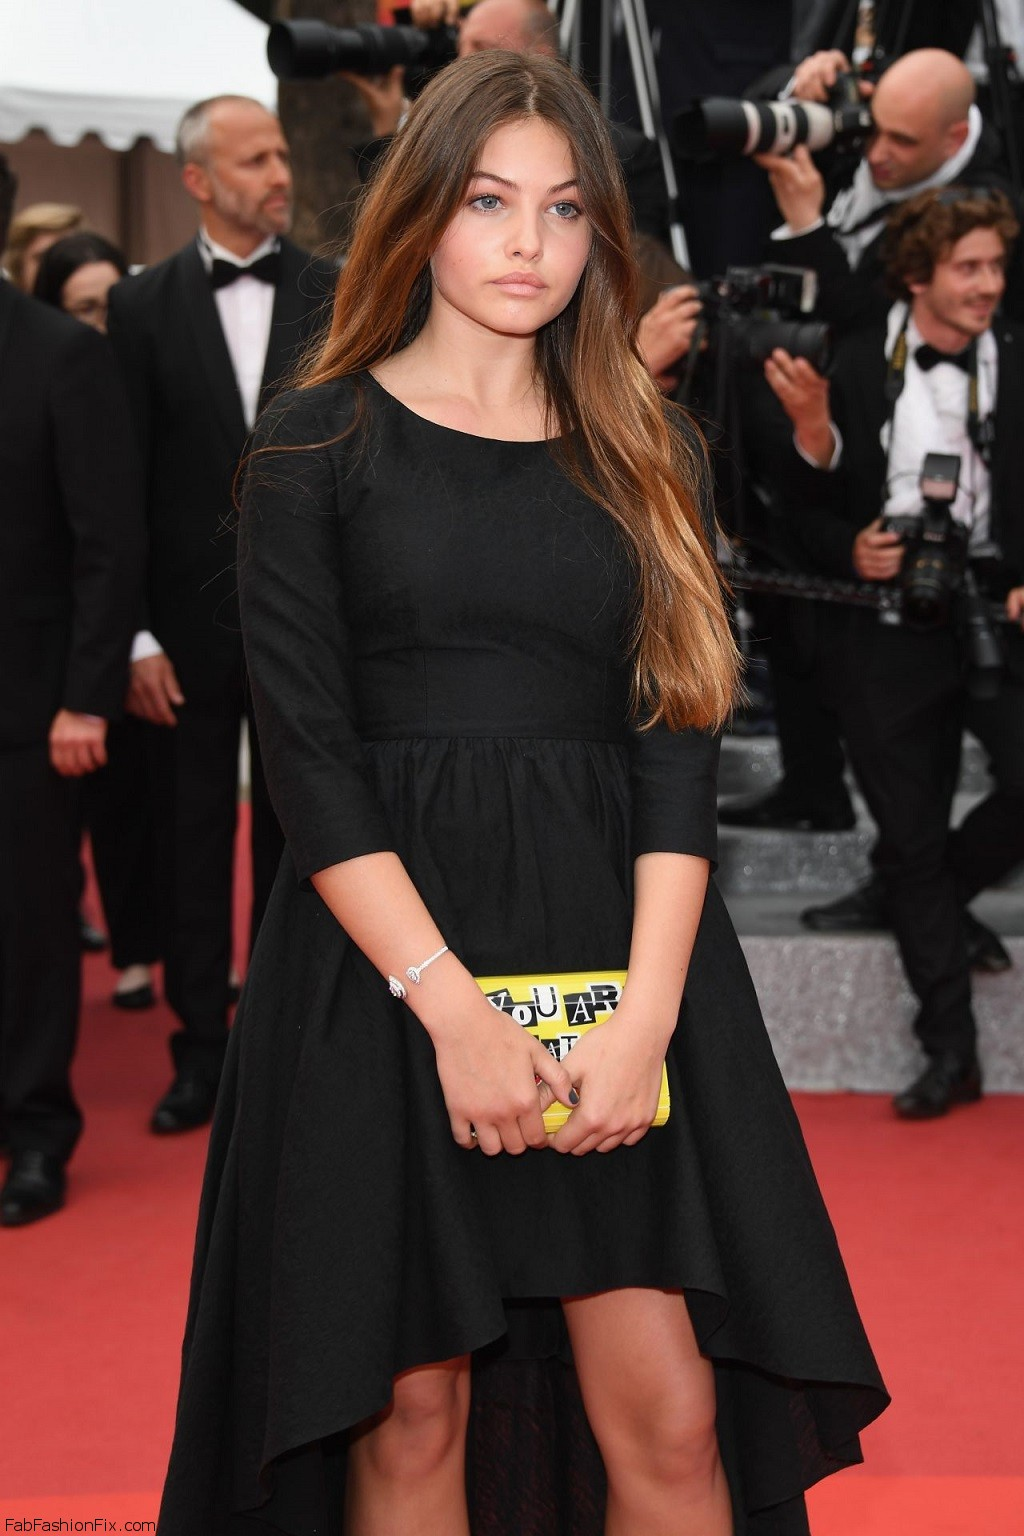 thylane-blondeau-the-bfg-premiere-cannes-film-festival-in-cannes-5-14-2016-1